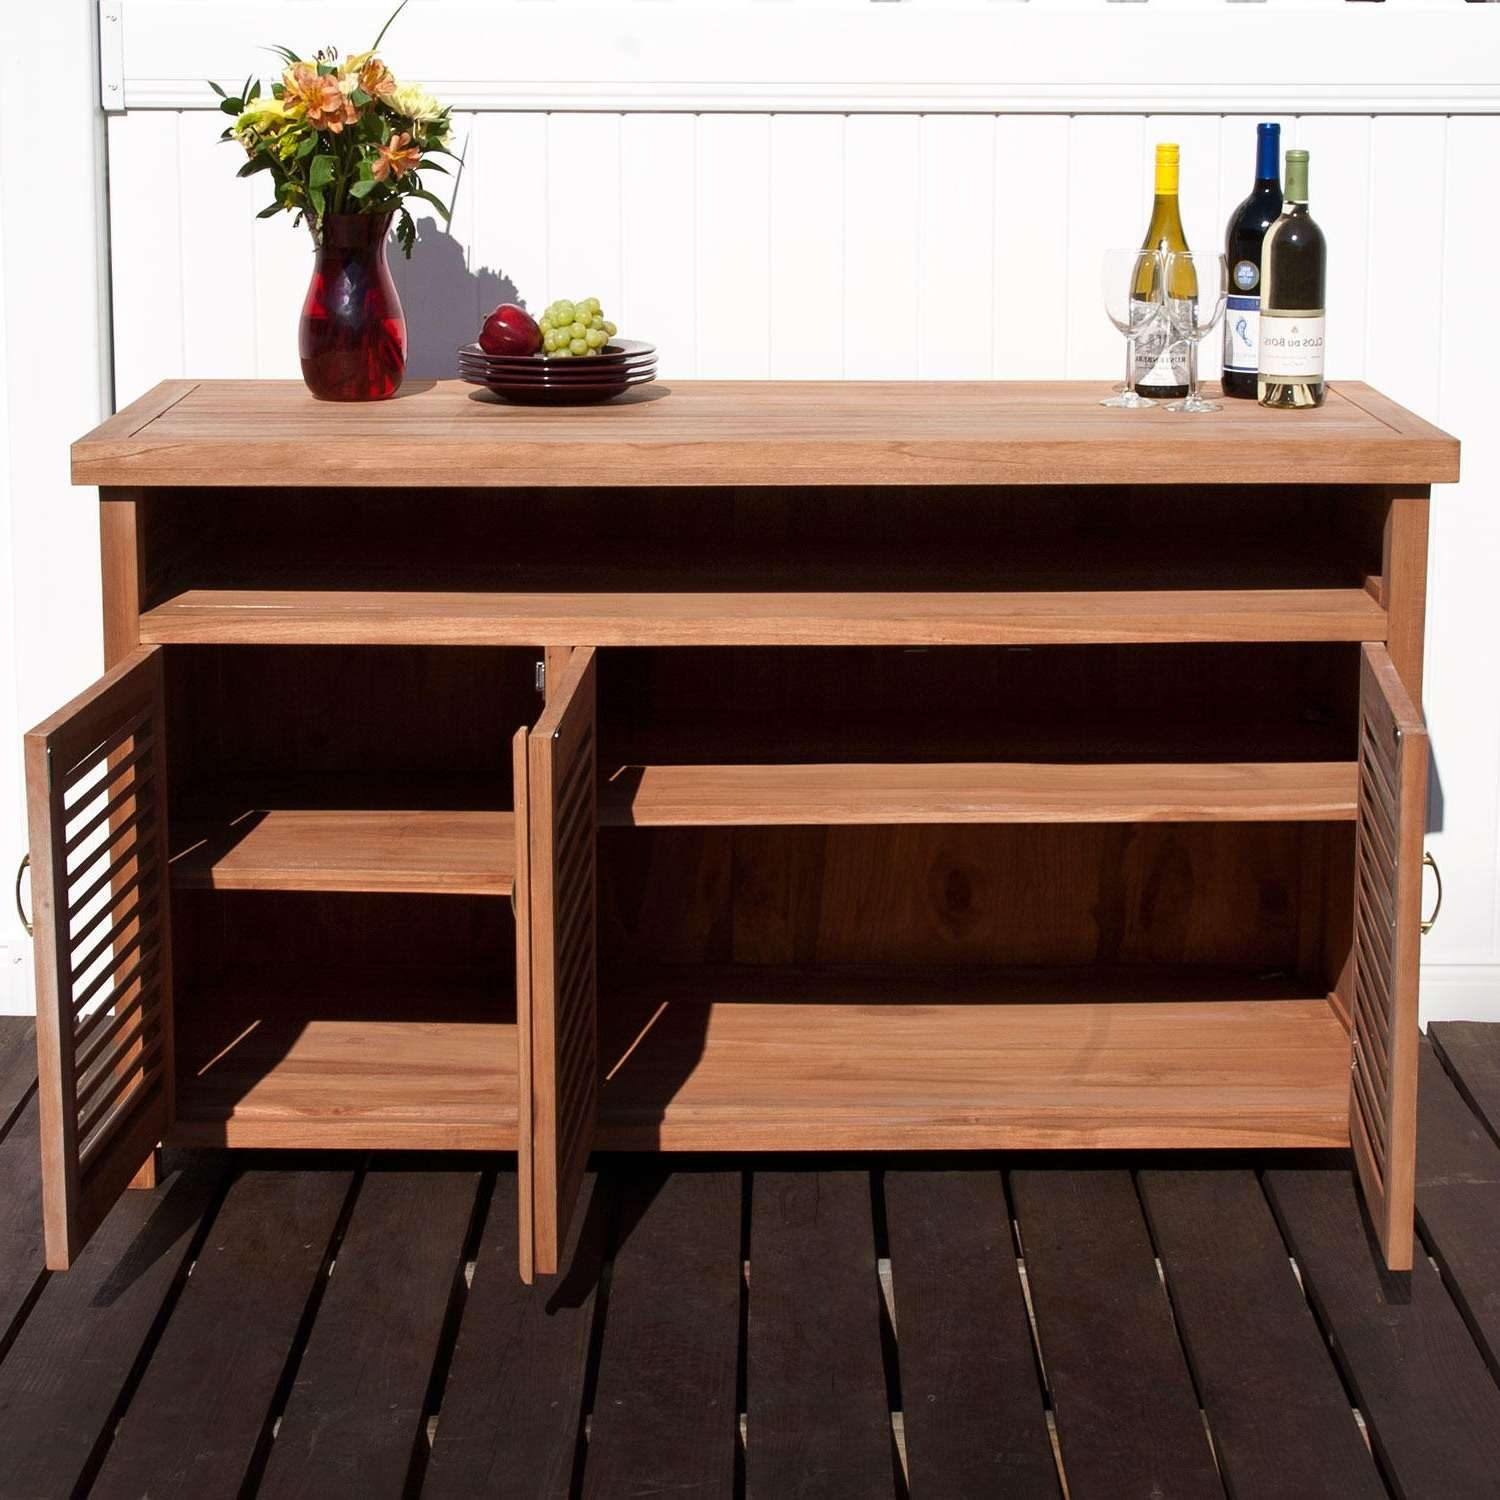 Teak Outdoor Buffet With Storage – Outdoor Pertaining To Outdoor Sideboards Cabinets (View 18 of 20)